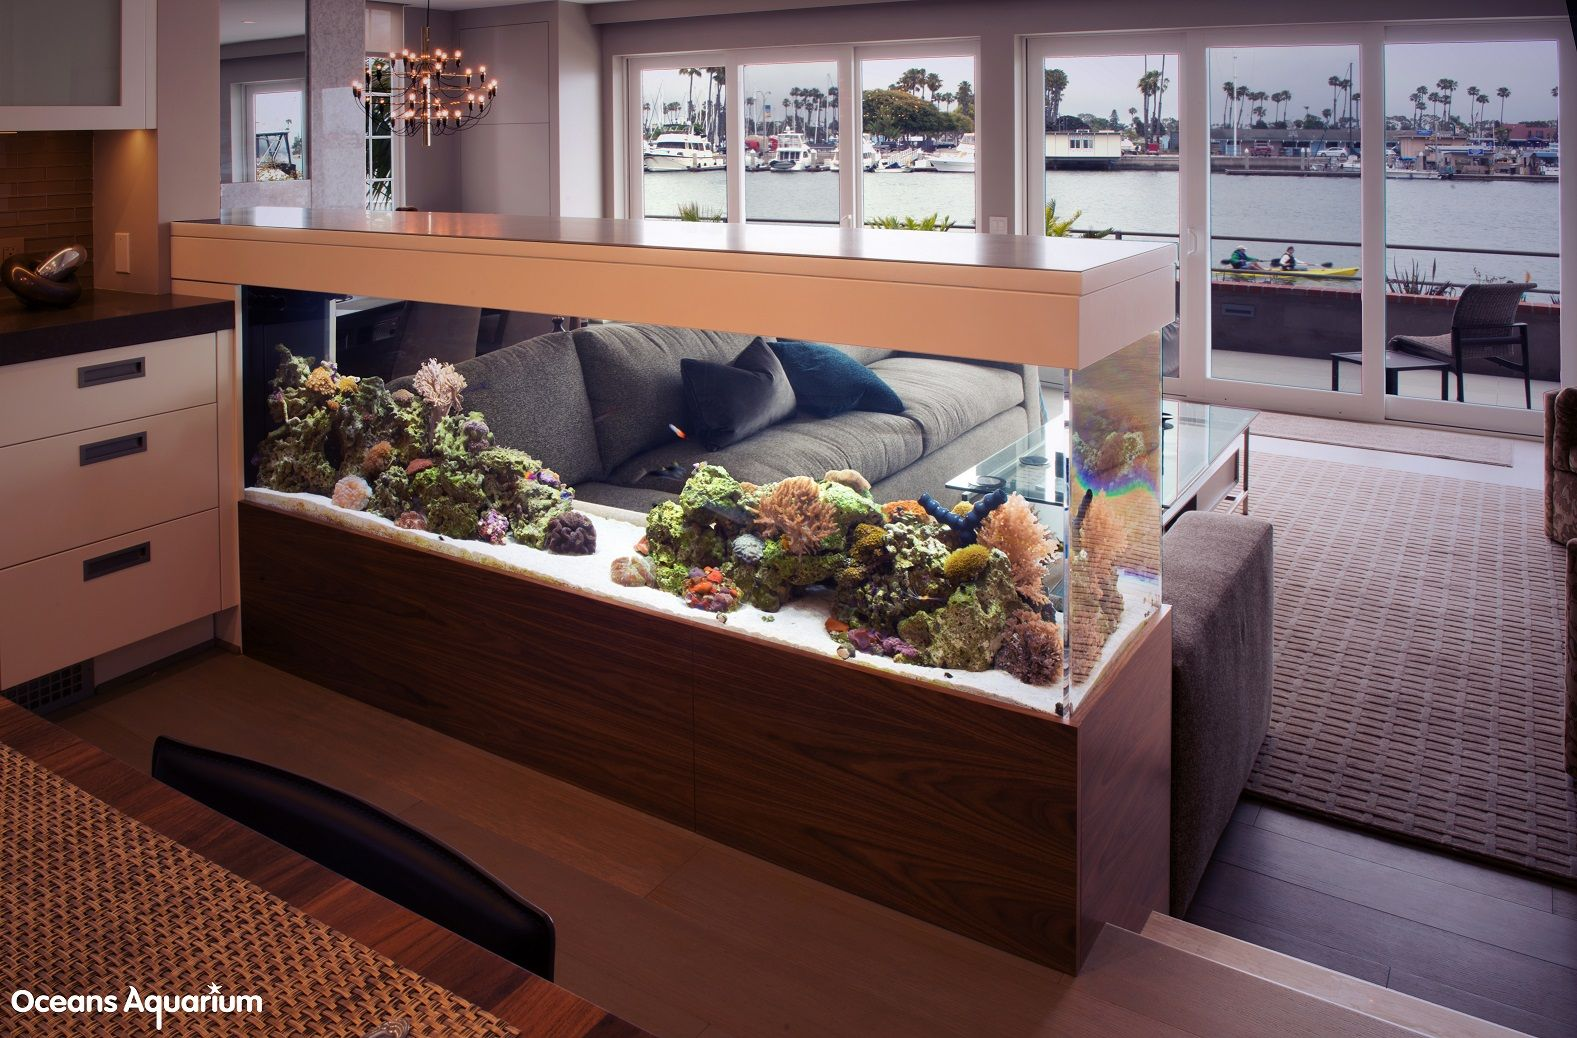 200 Gallon Living Reef Custom Aquarium. Room Divider Peninsula Style  Aquarium. In Long Beach